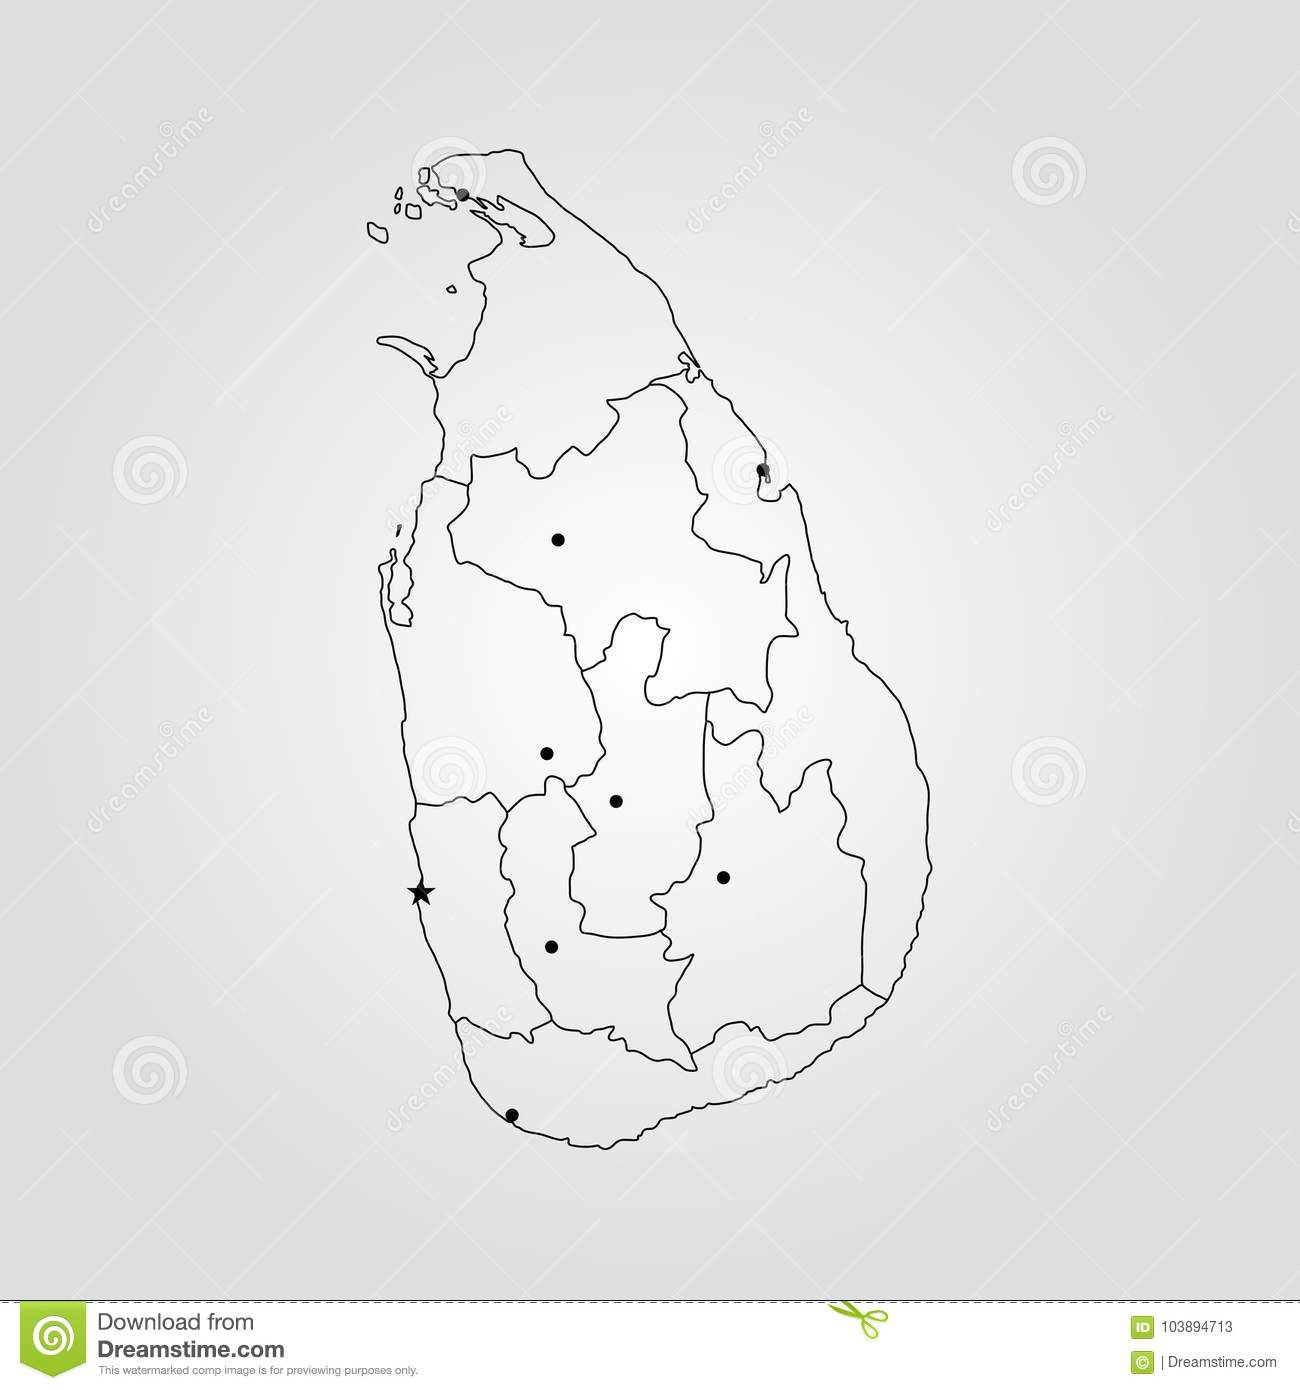 Map Of Sri Lanka Stock Illustration Illustration Of Concept 103894713